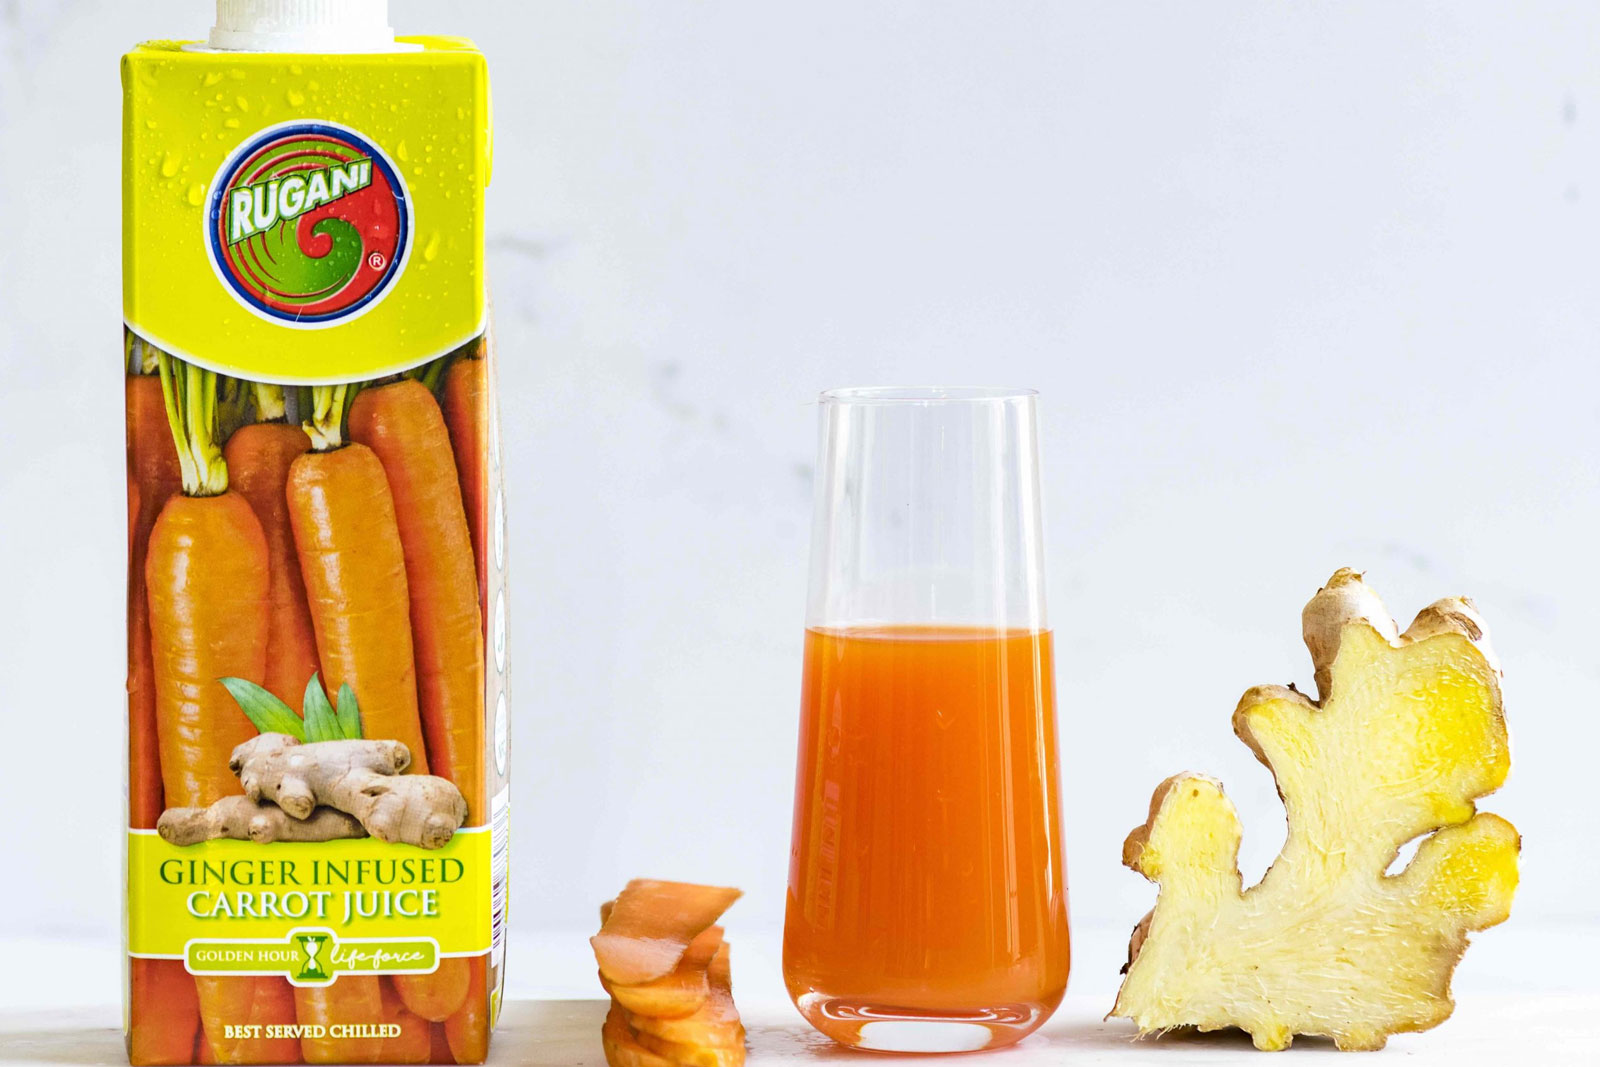 Ginger infused carrot juice with ingredients